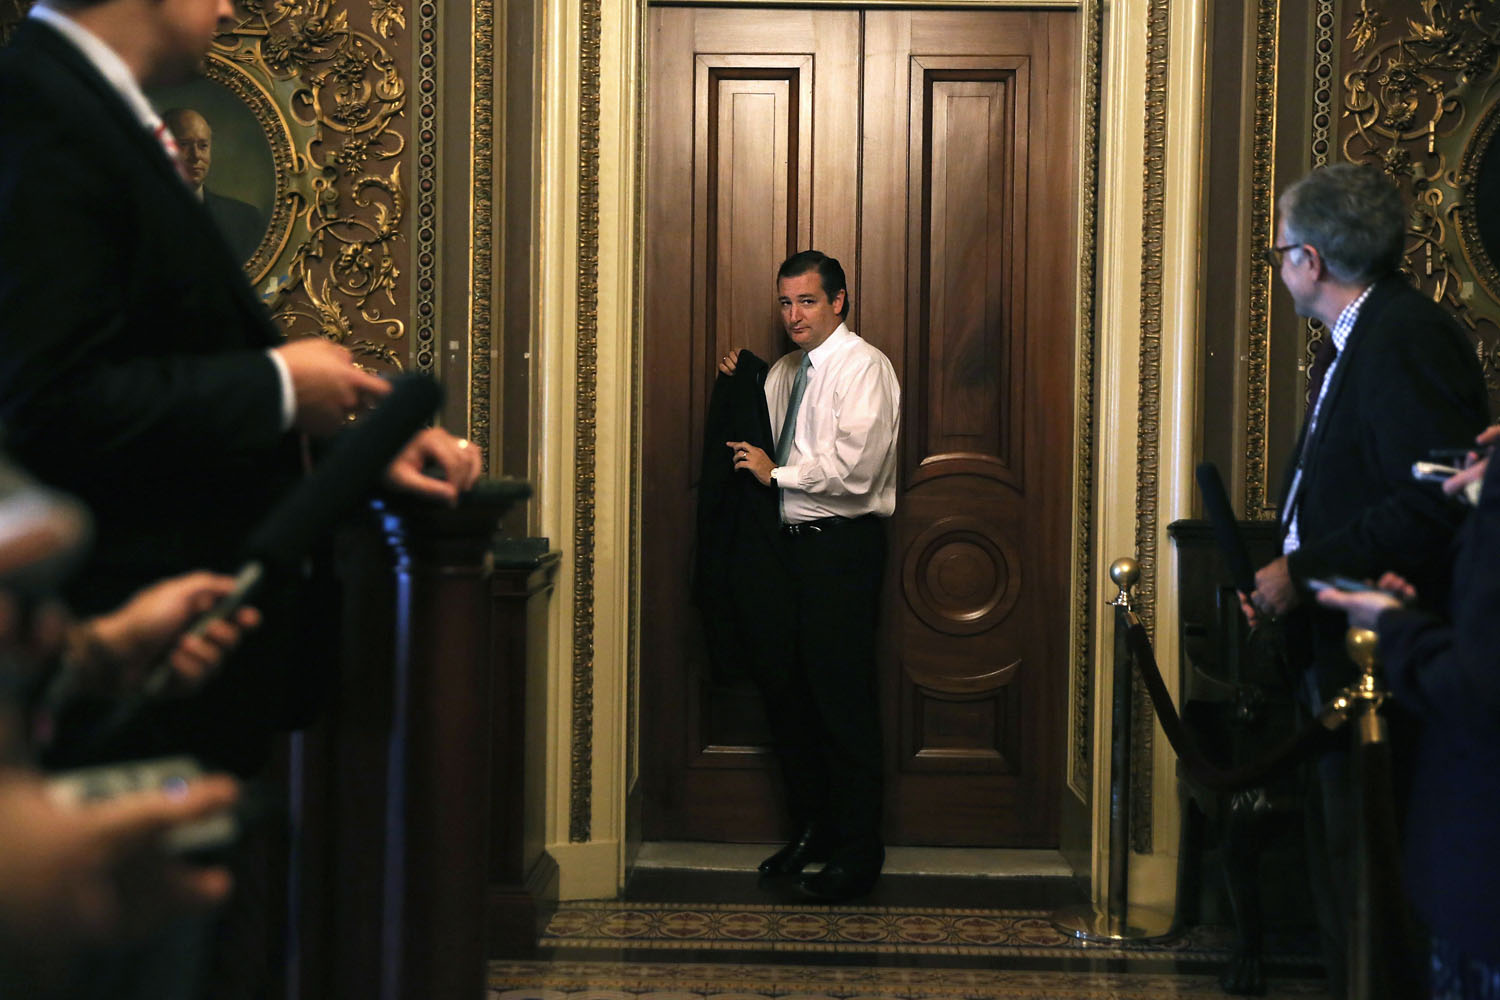 Sept. 24, 2013. U.S. Sen. Ted Cruz (R-TX) leaves after the weekly Senate Republican Policy Committee luncheon on Capitol Hill in Washington.